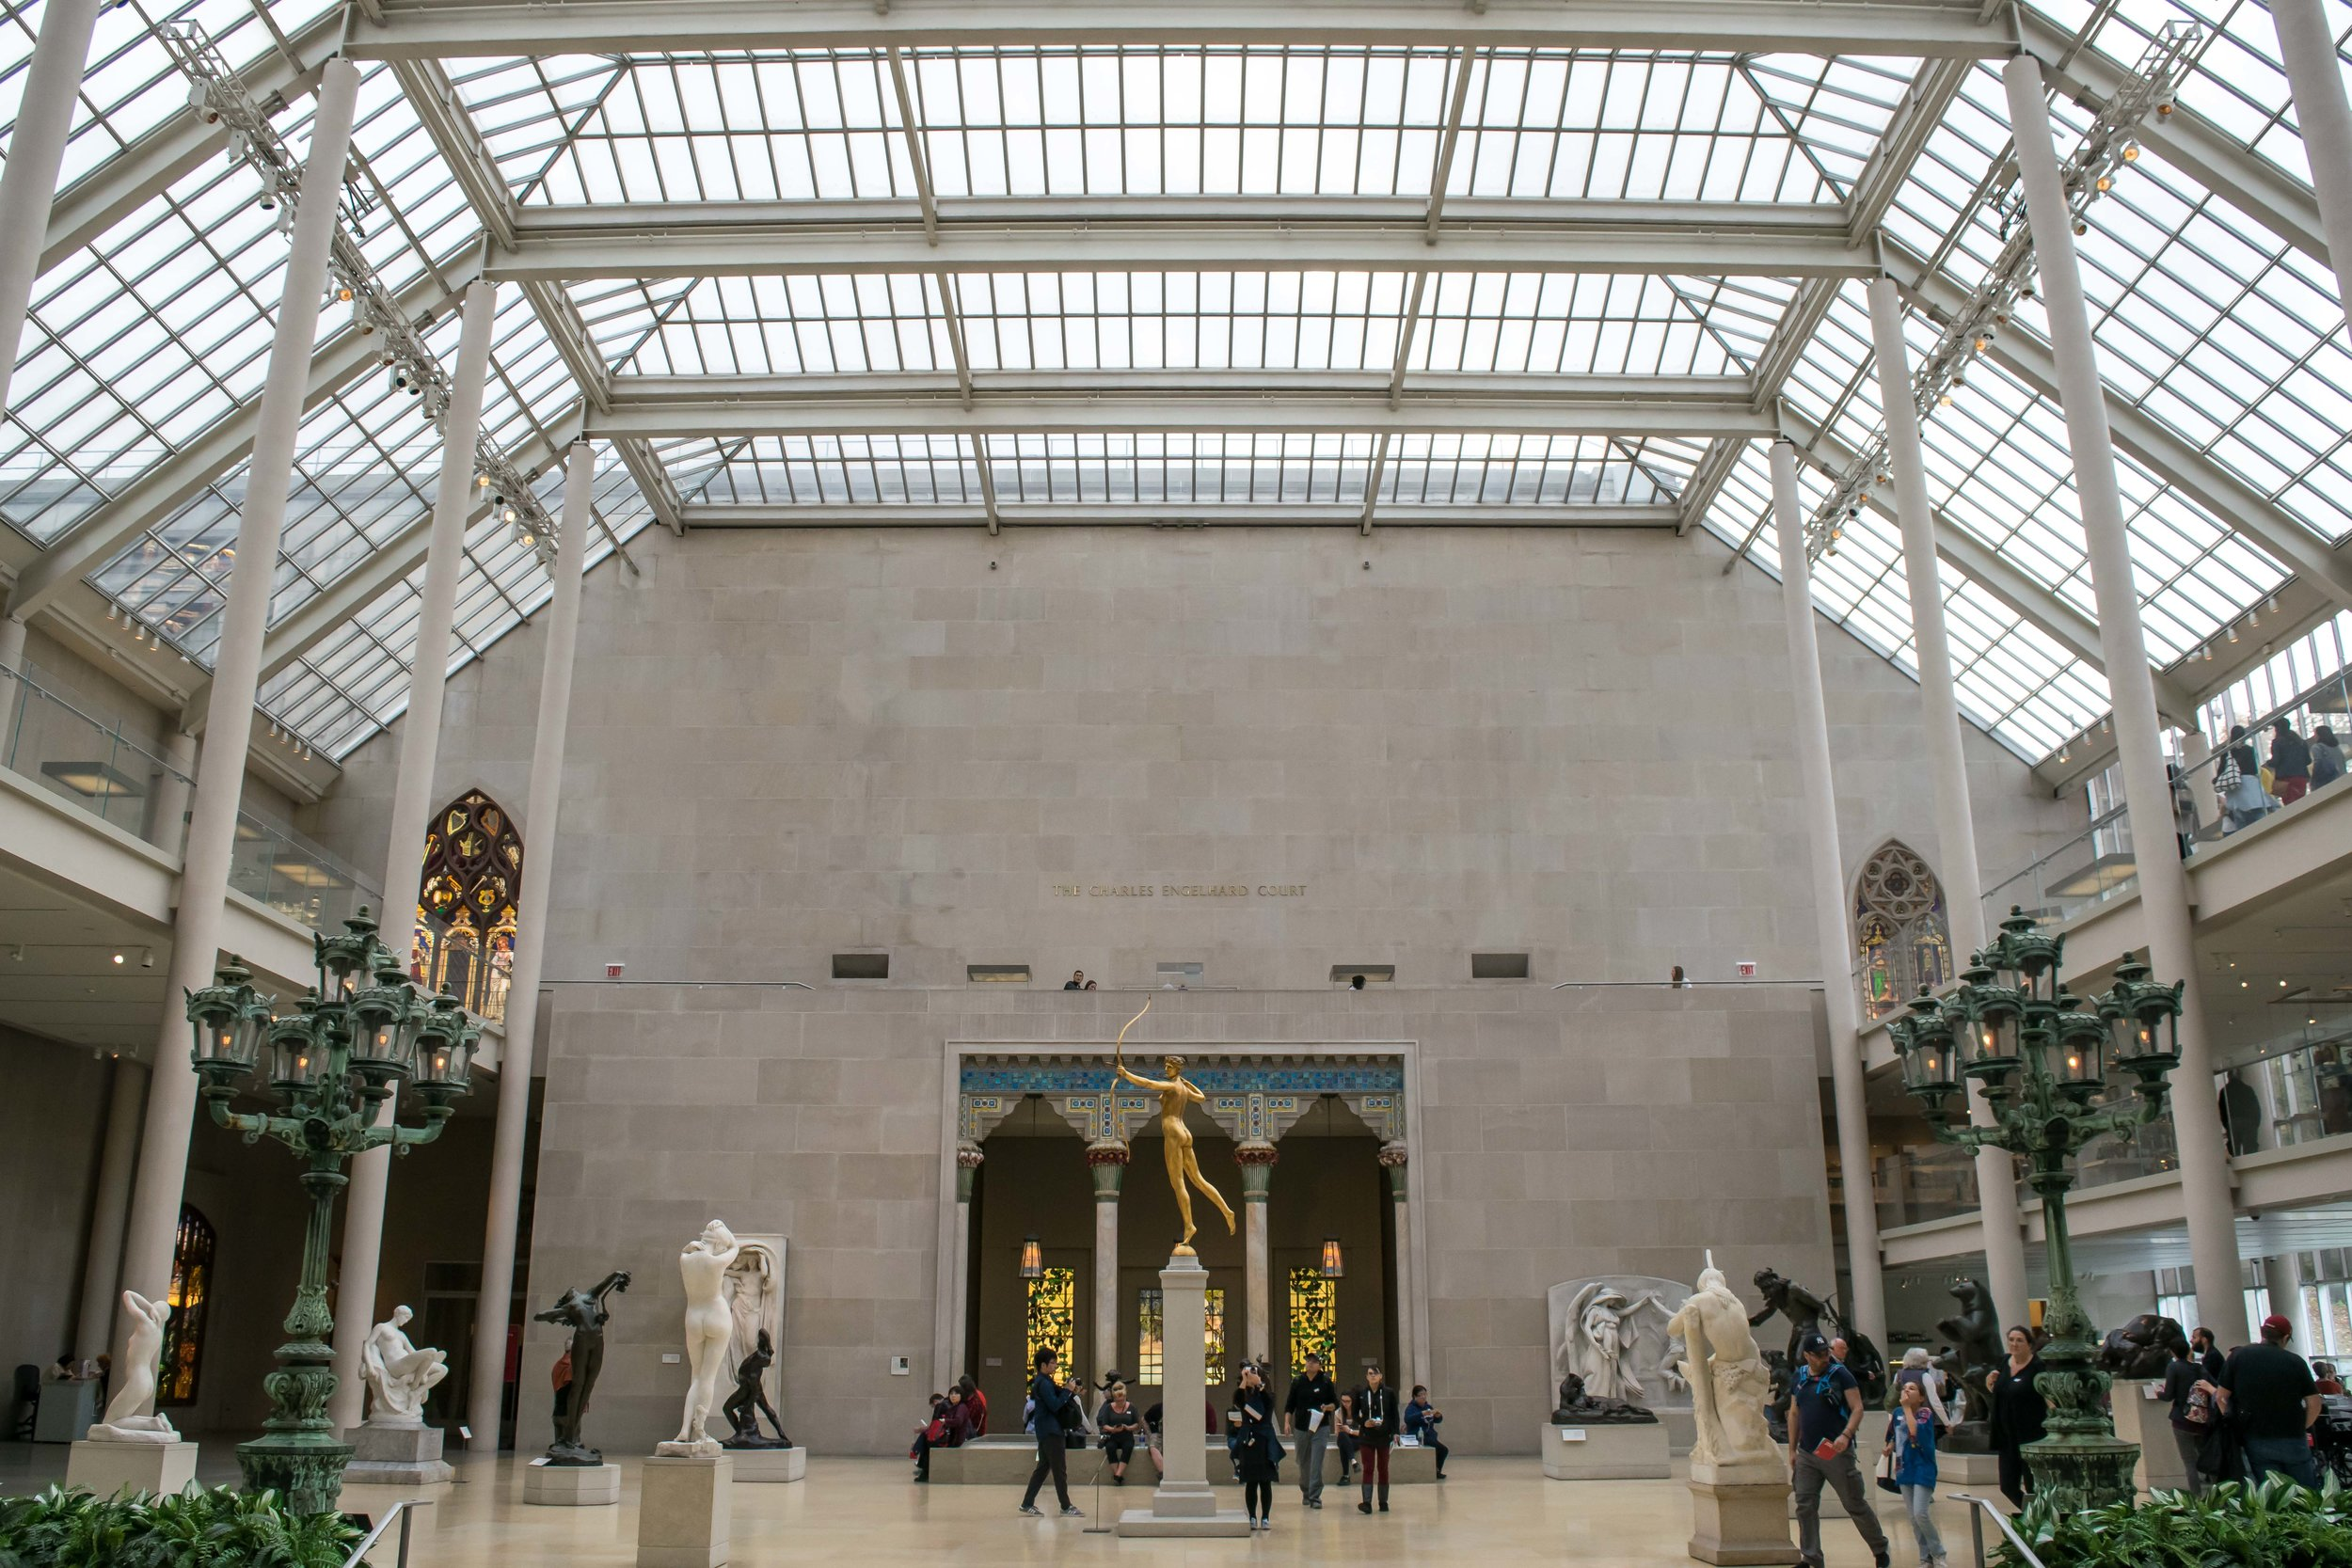 How to Spend an Afternoon at the Metropolitan Museum of Art